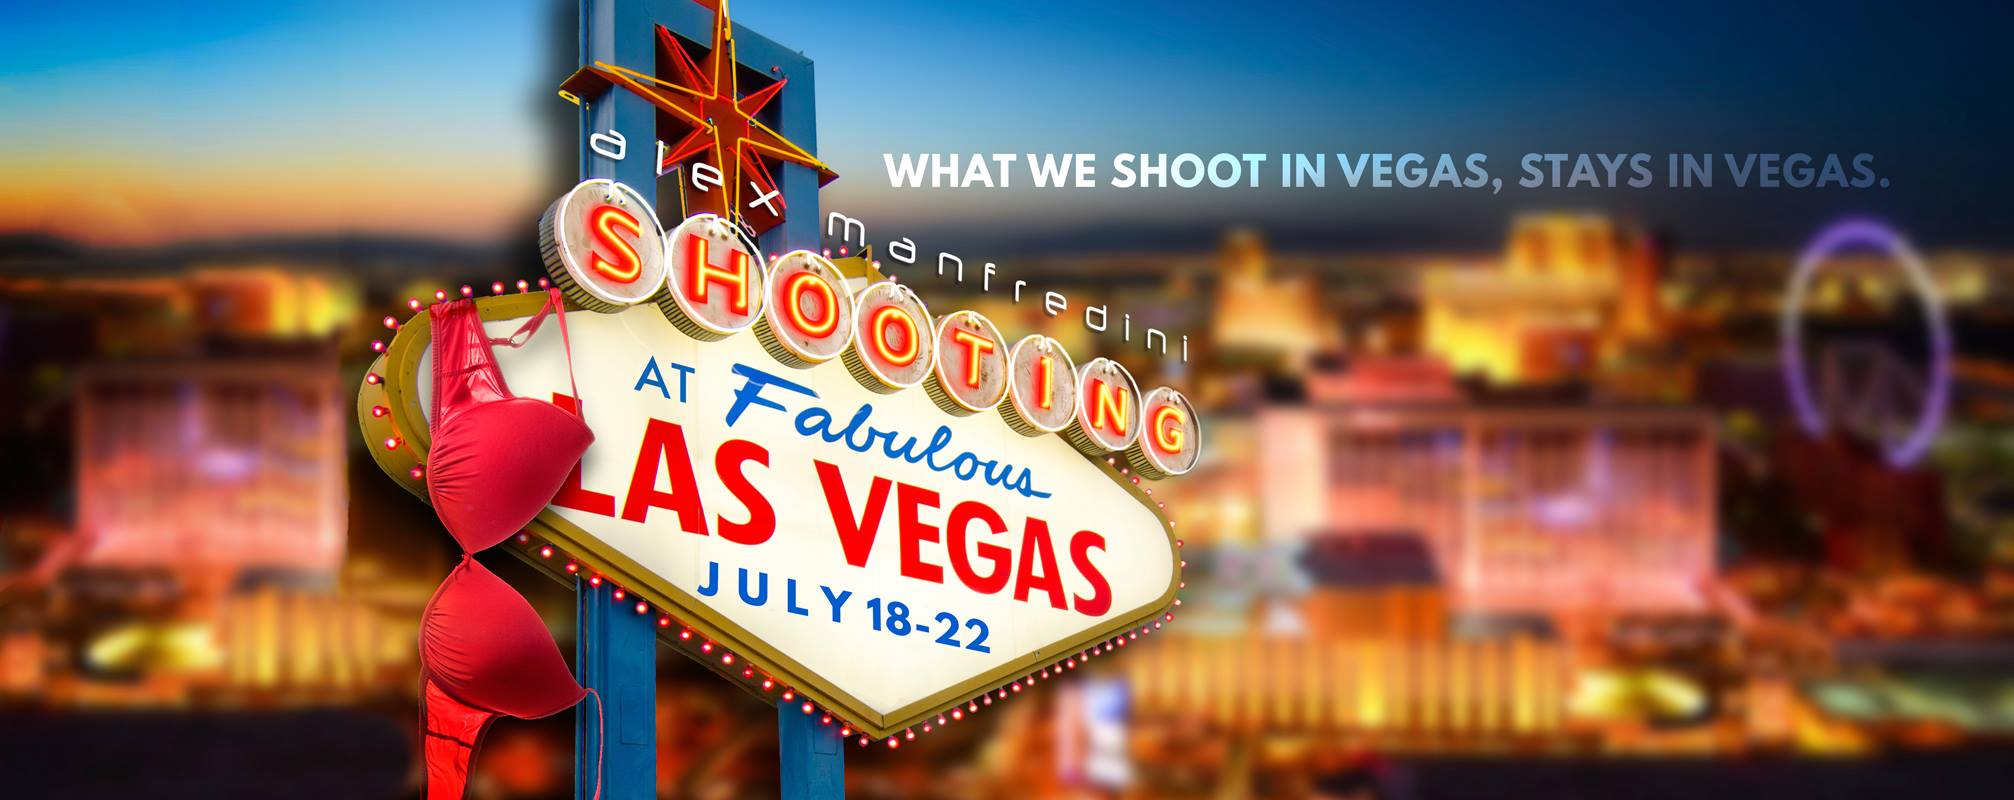 Las Vegas Photoshoots July 18-22